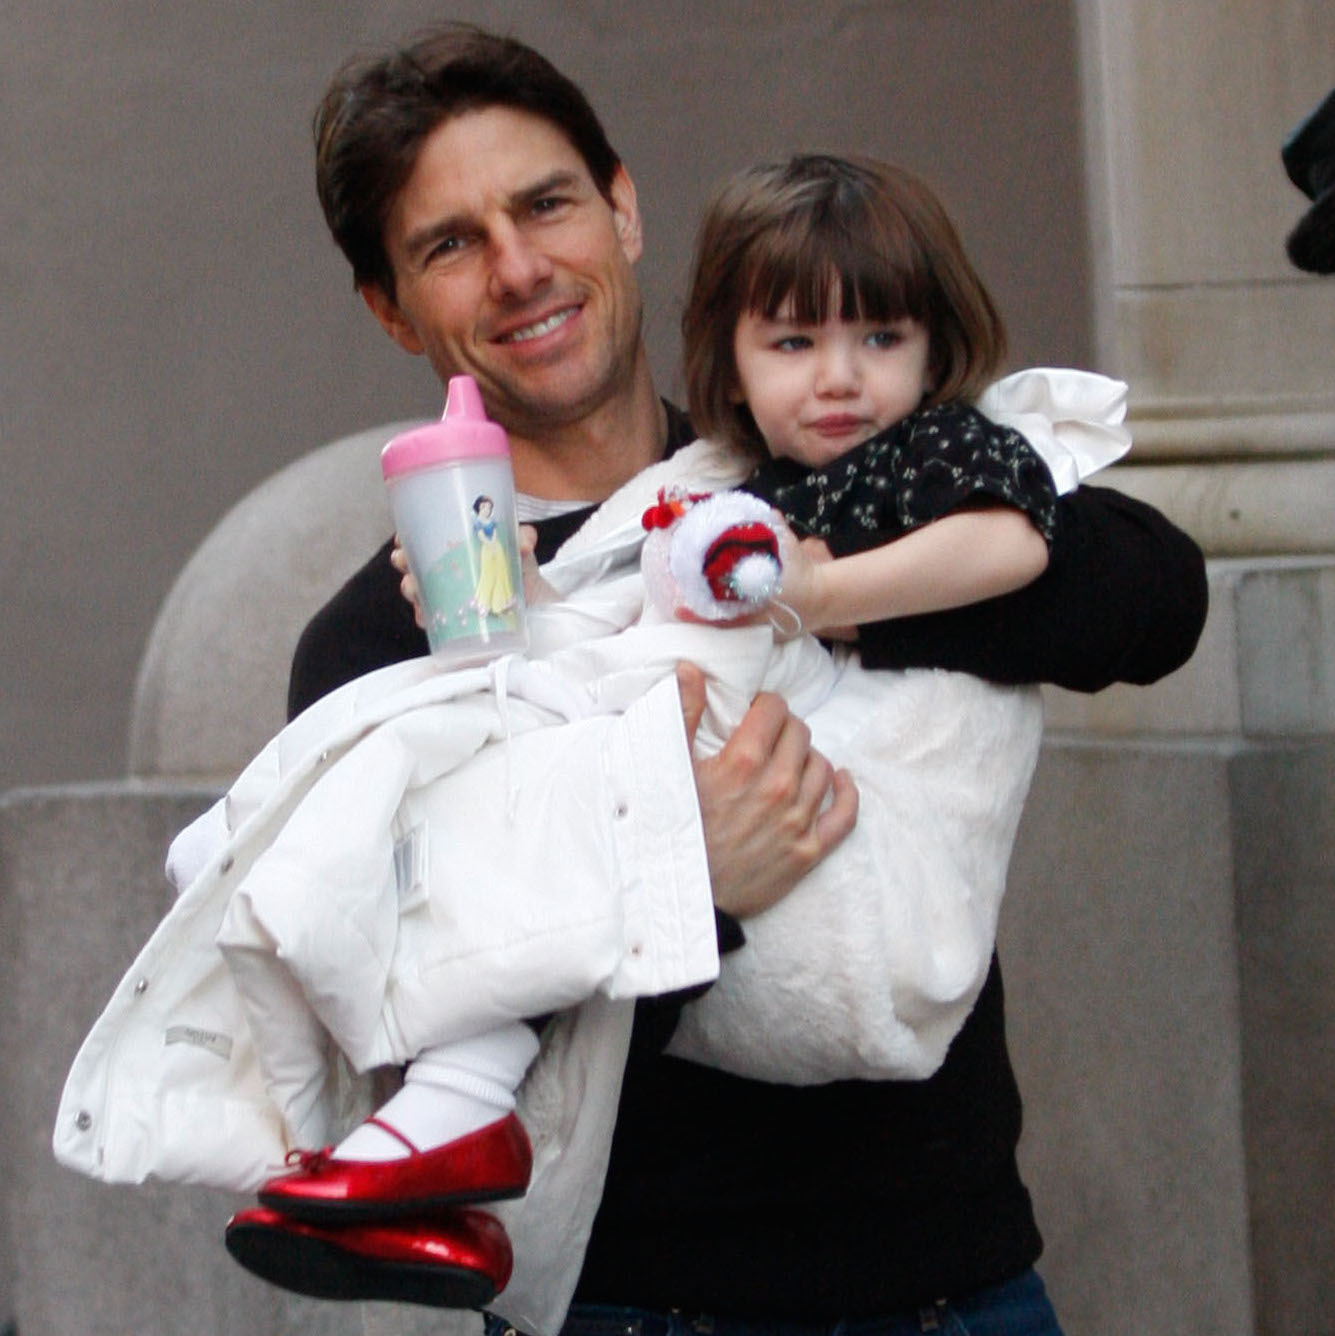 Does Tom Cruise See Daughter Suri? Here's What We Know